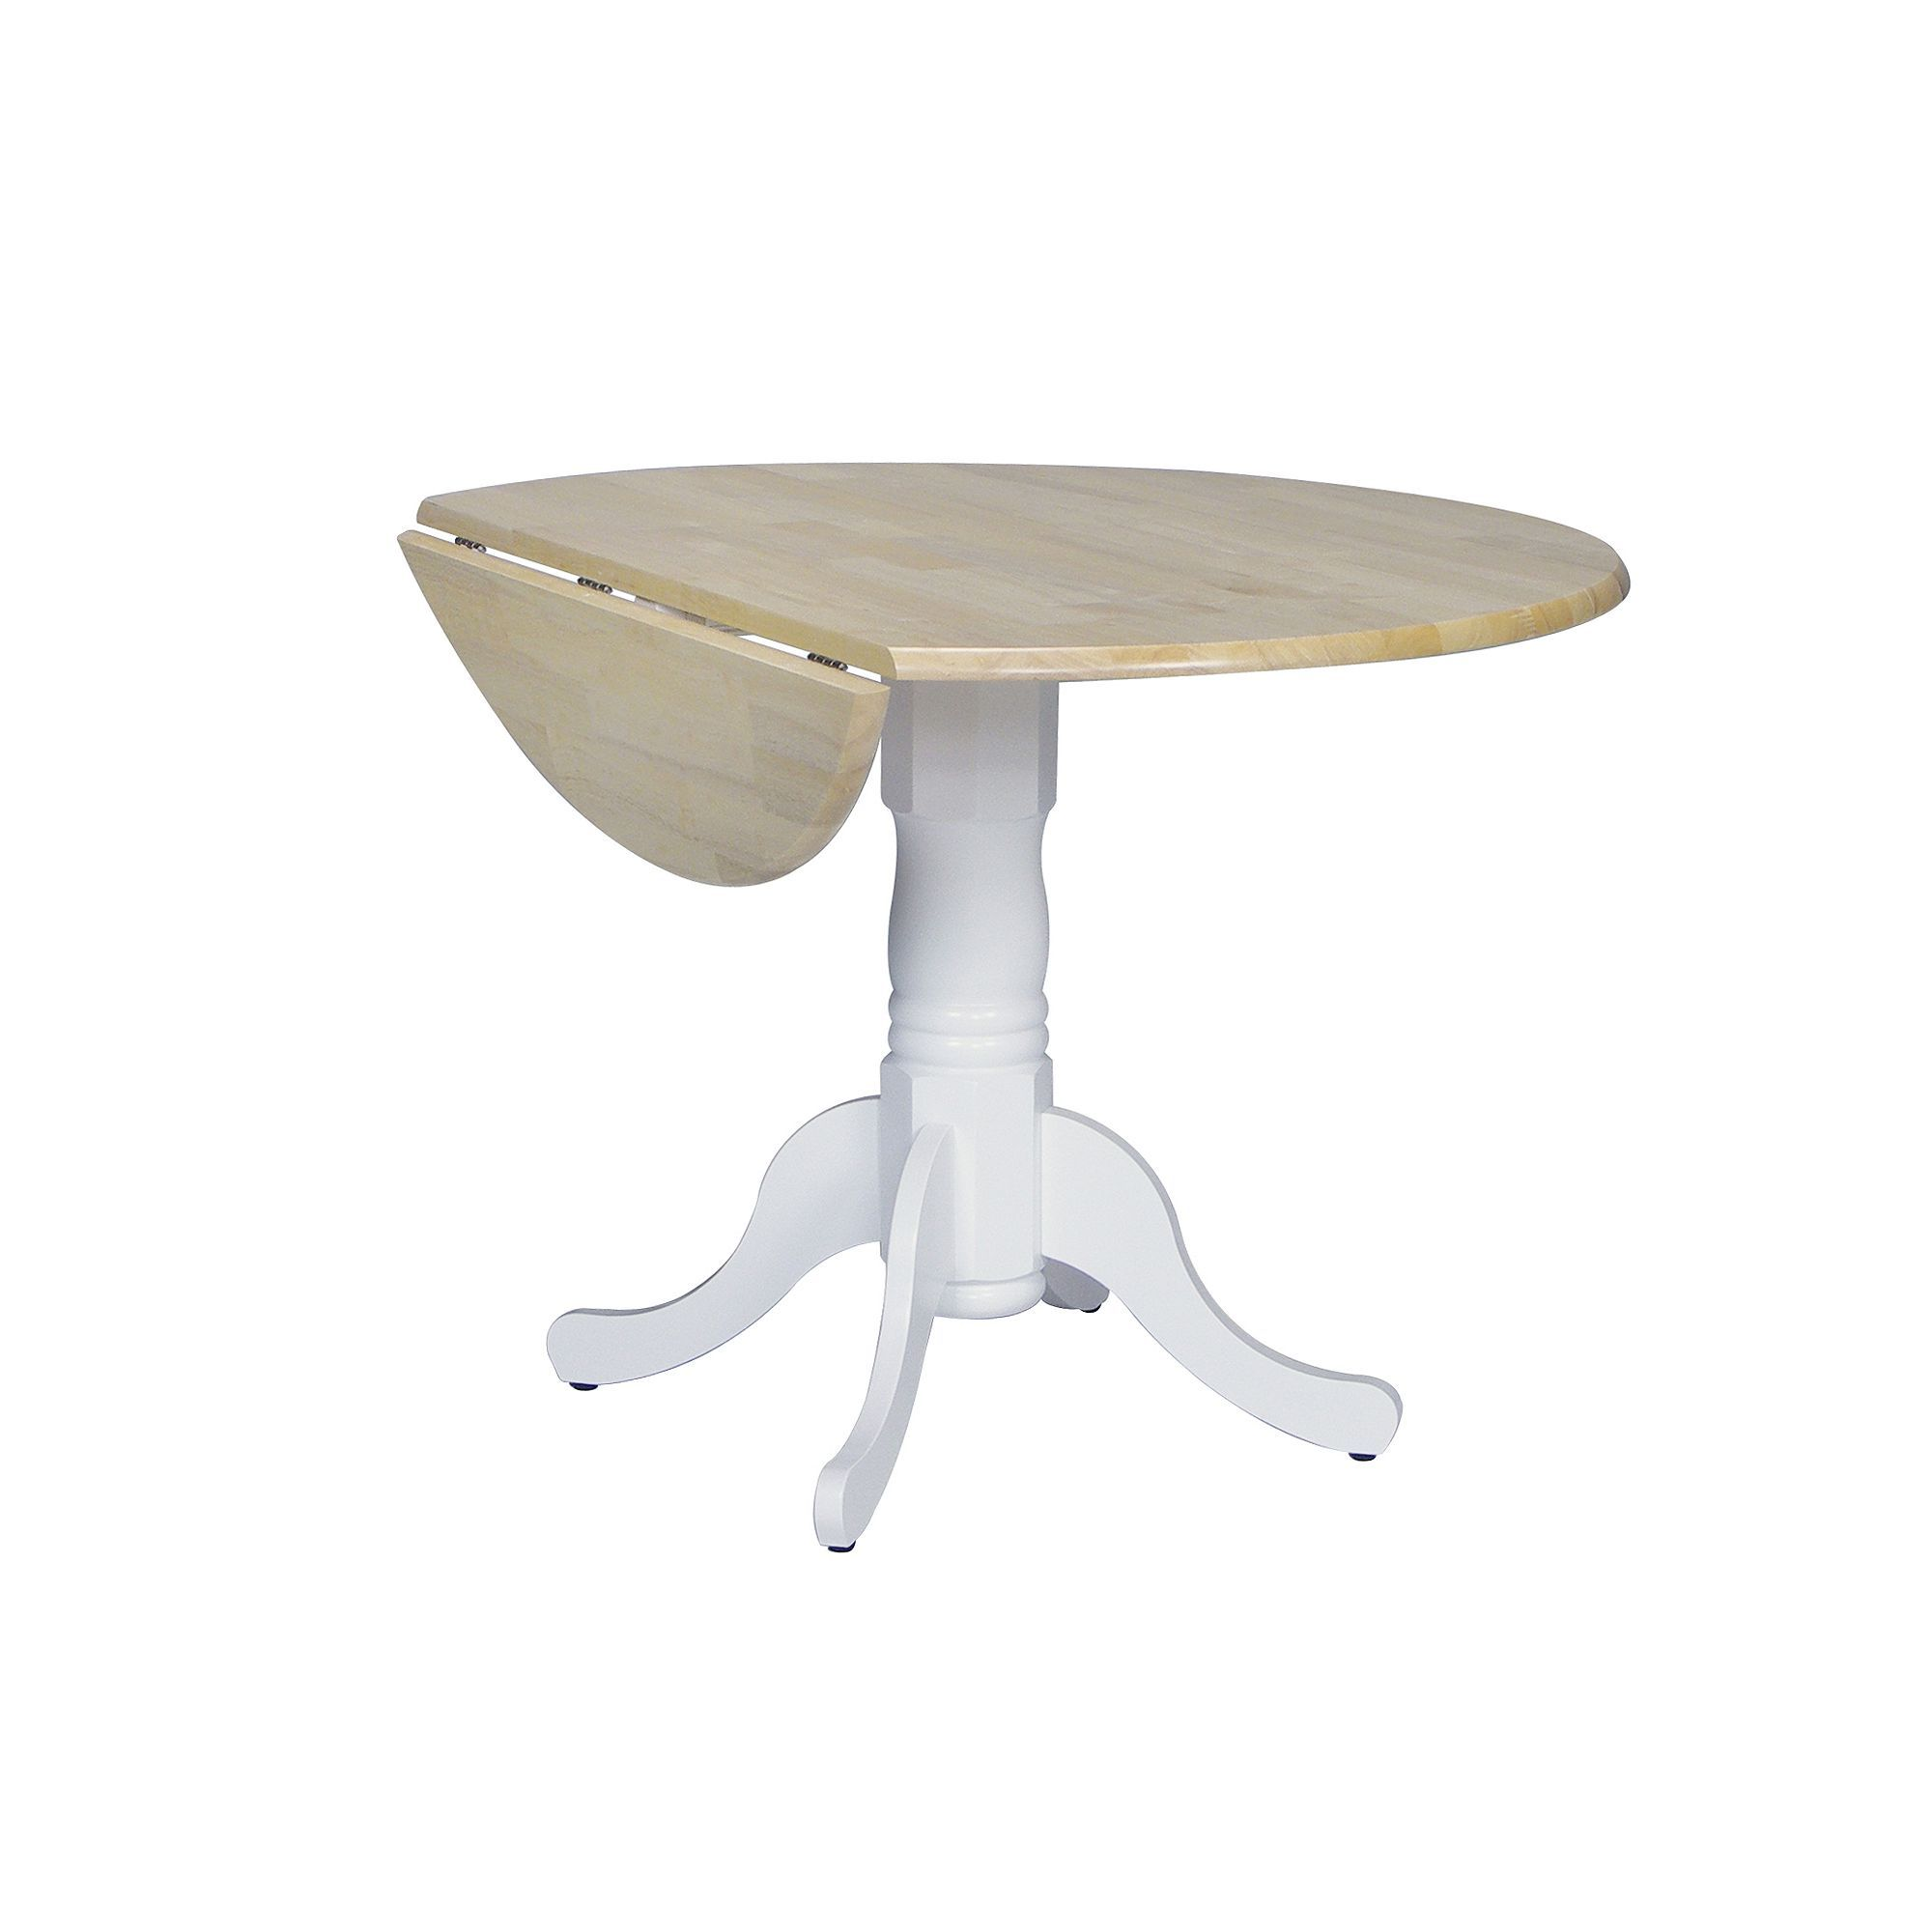 International Concepts Round Drop Leaf Table Products Drop Leaf